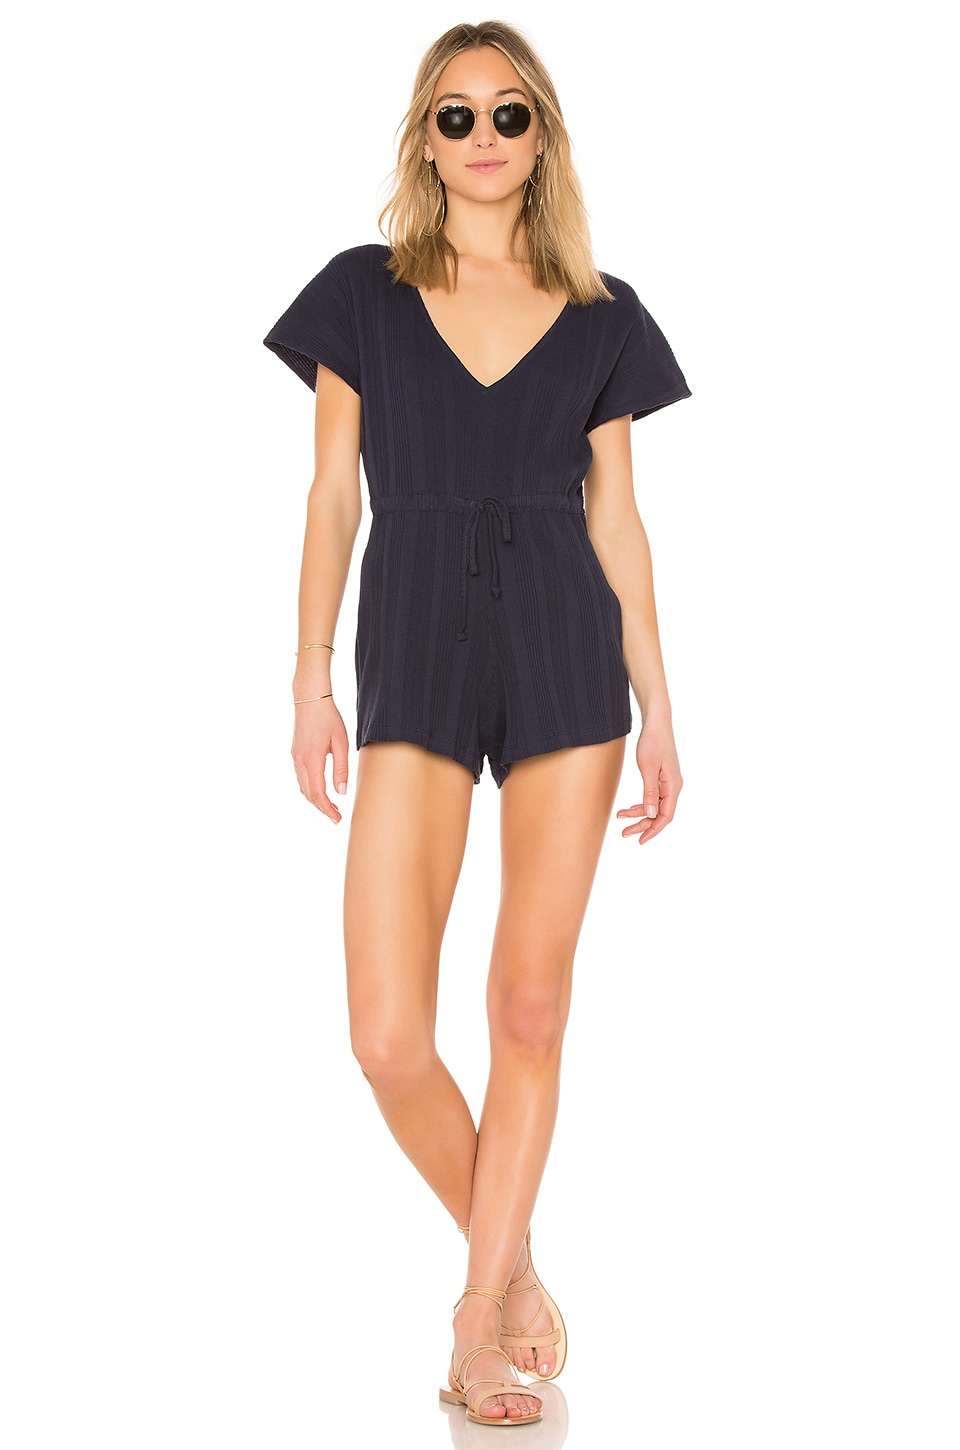 Nightfall Playsuit